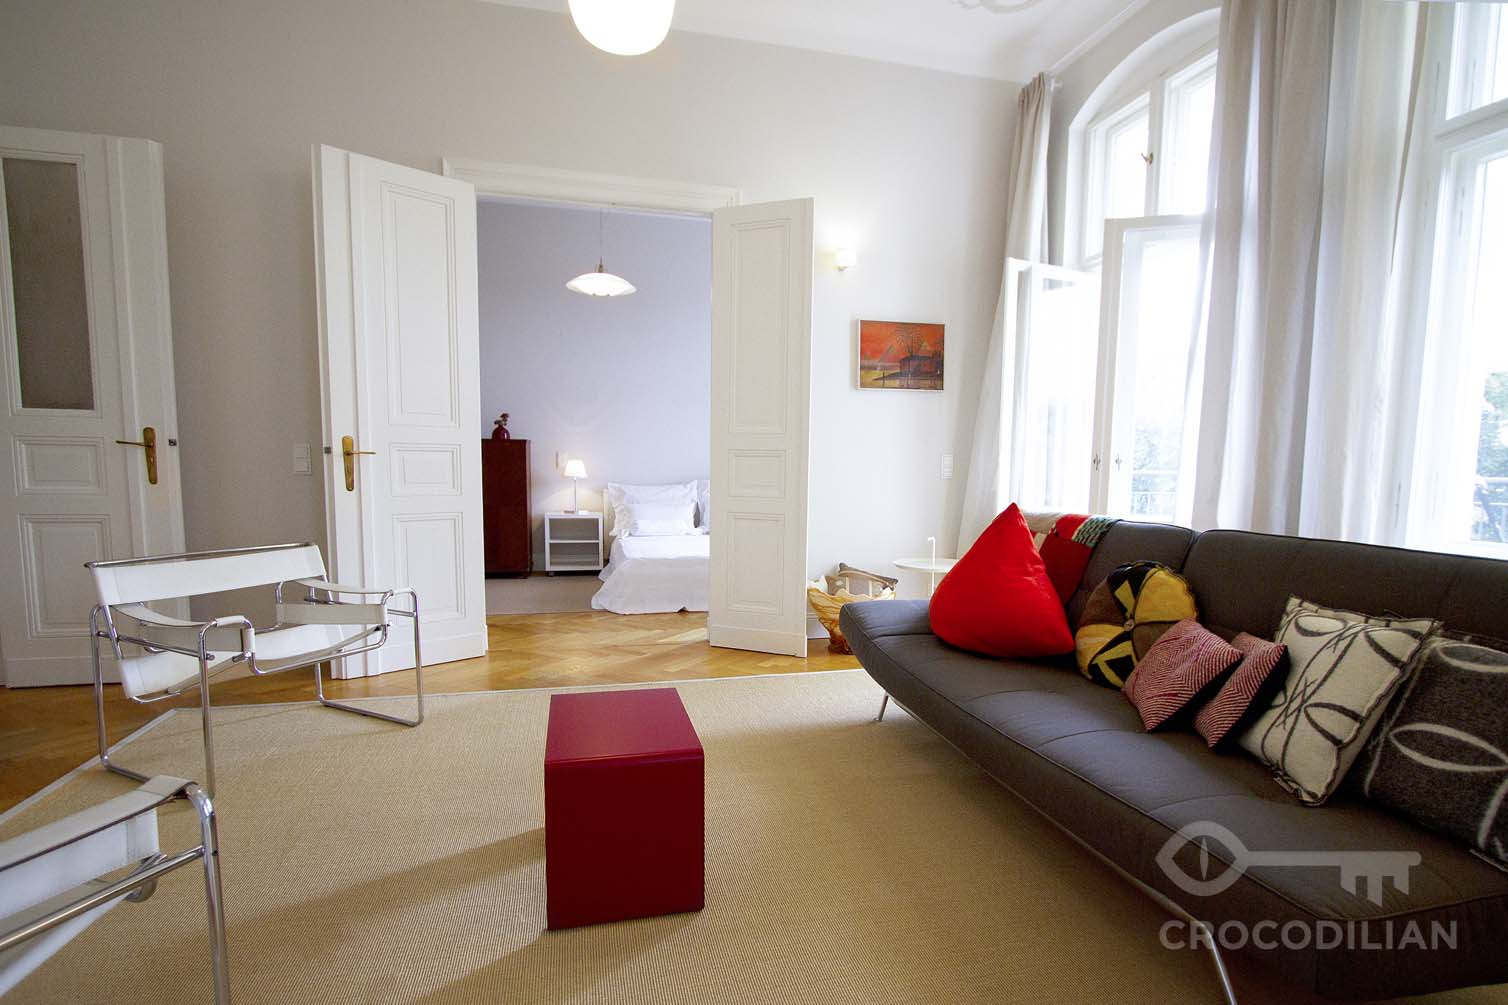 Elegant 3,5-Room-Apartment with 2 Bedrooms and Balcony in Mommsenstr.